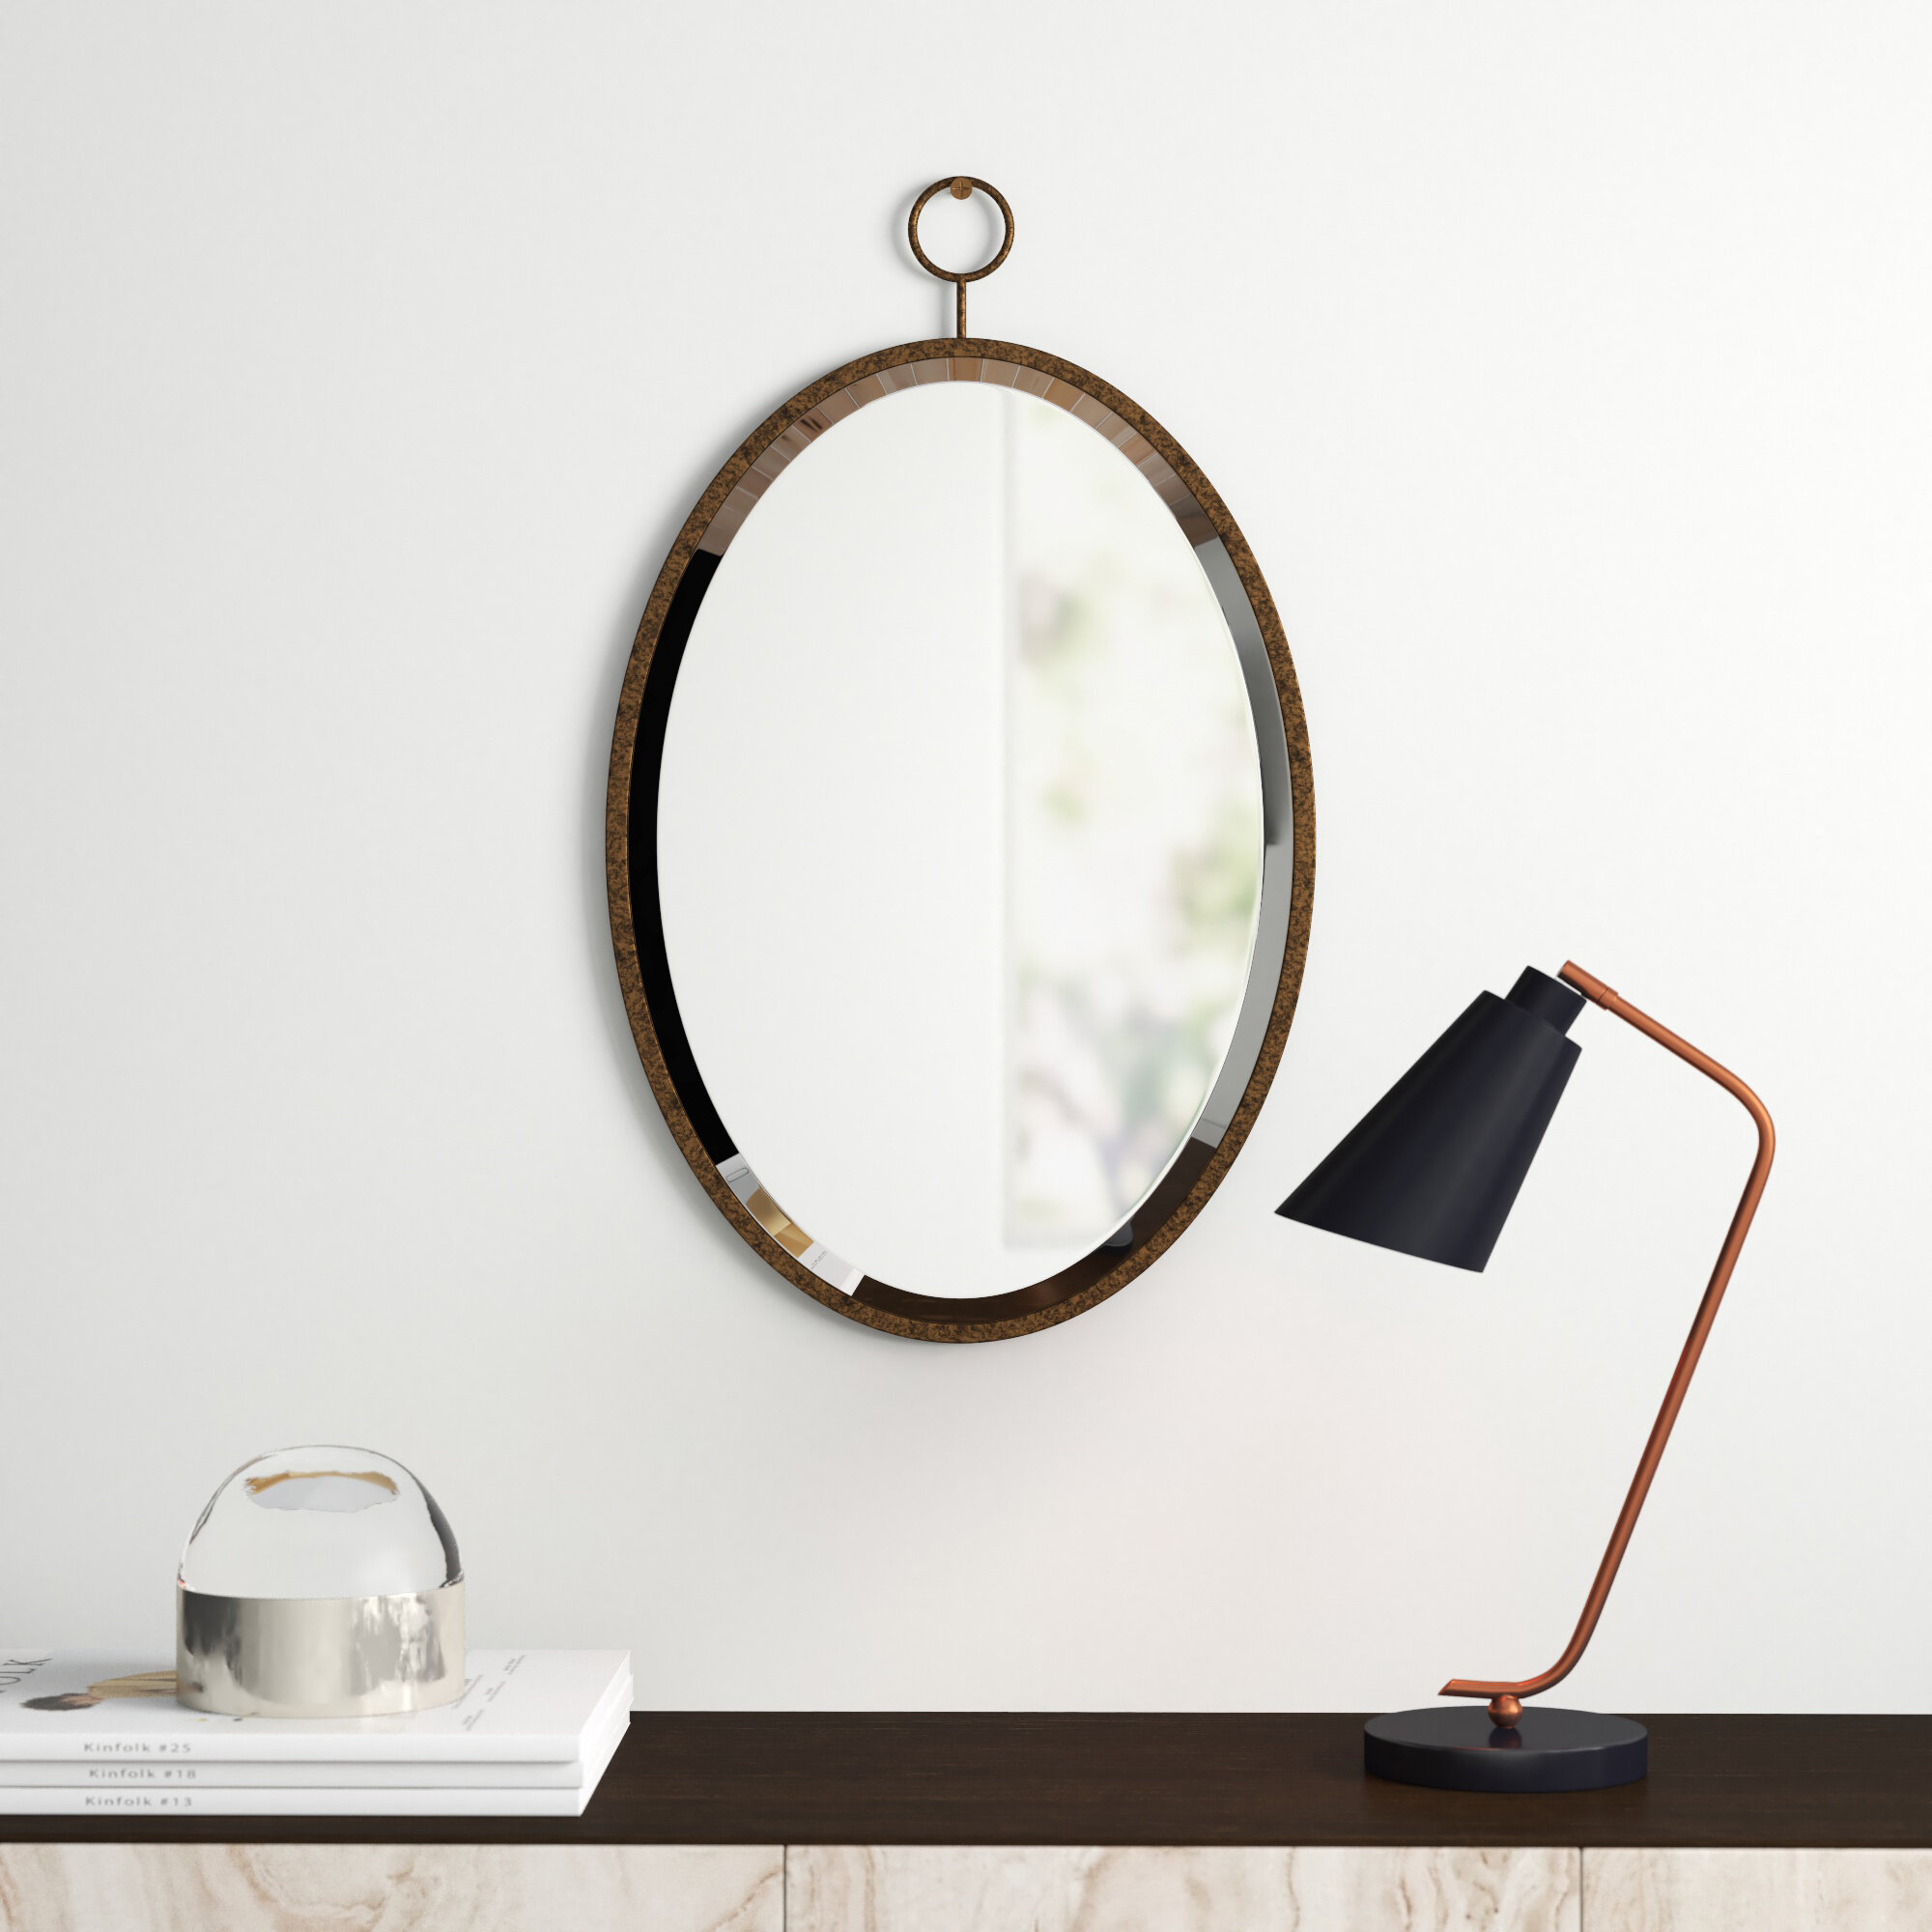 Modern & Contemporary Modern Mirrors | Allmodern Intended For Mahanoy Modern And Contemporary Distressed Accent Mirrors (Image 14 of 20)